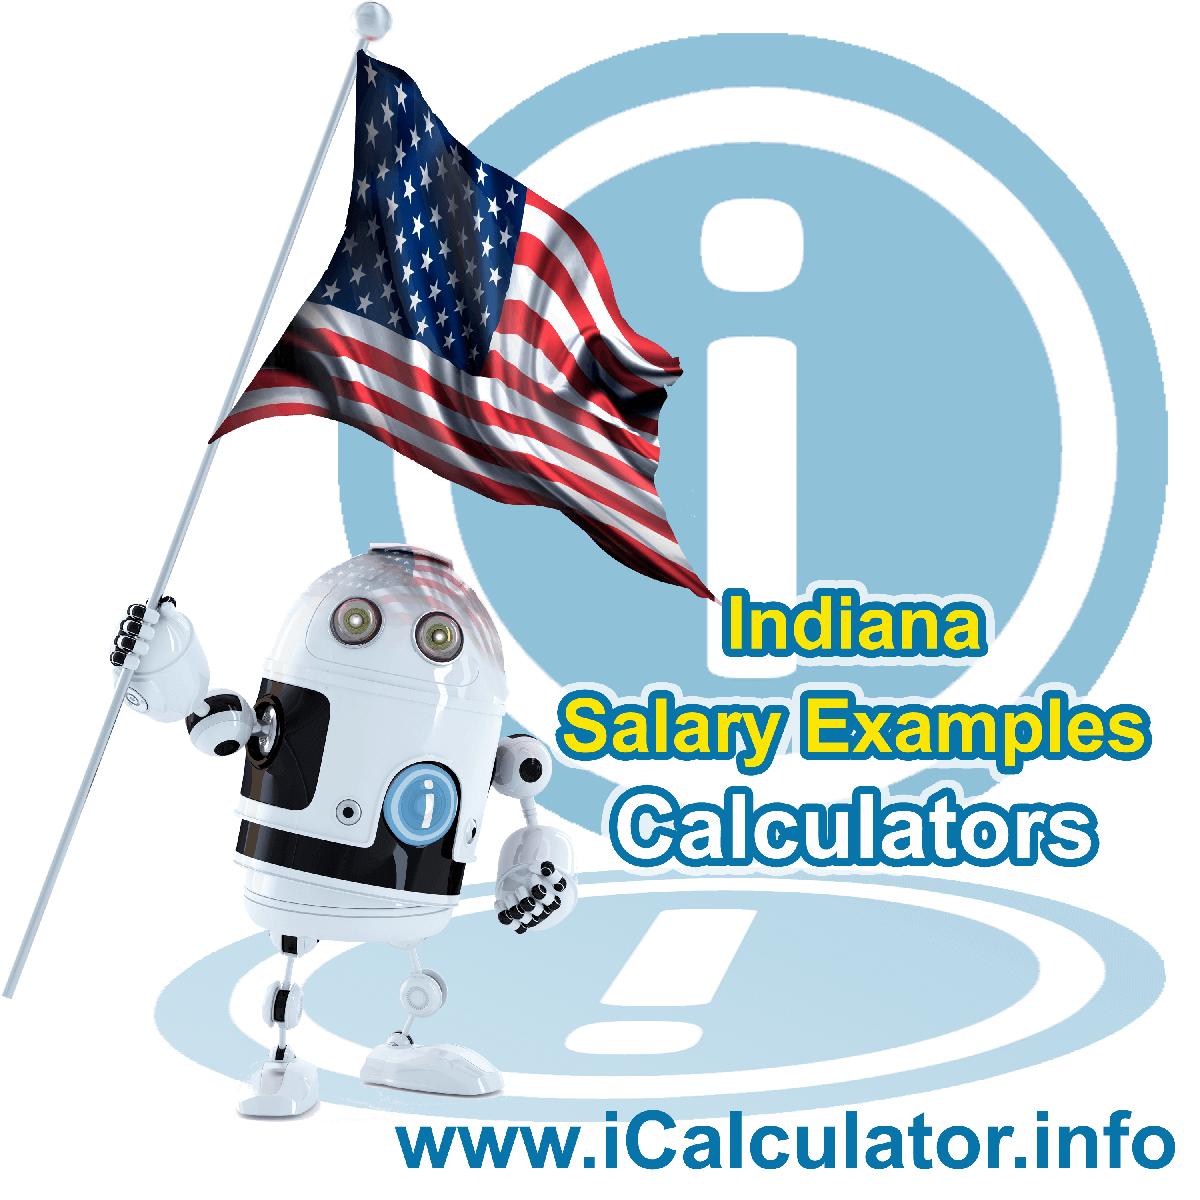 Indiana Salary Example for $120.00 in 2020 | iCalculator | $120.00 salary example for employee and employer paying Indiana State tincome taxes. Detailed salary after tax calculation including Indiana State Tax, Federal State Tax, Medicare Deductions, Social Security, Capital Gains and other income tax and salary deductions complete with supporting Indiana state tax tables